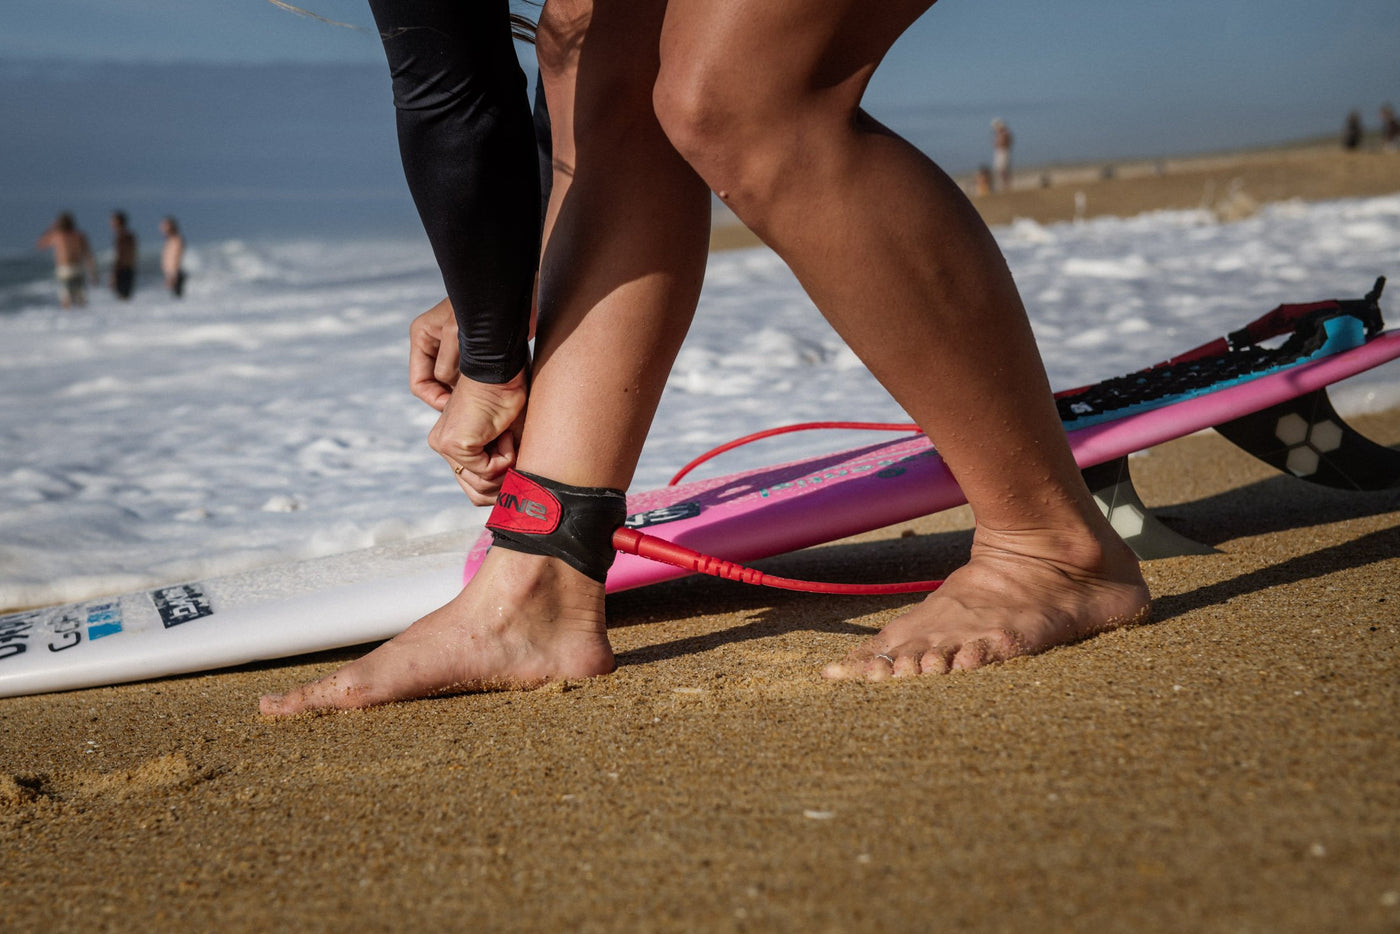 Woman attaching her Dakine Surf Leash before surfing.